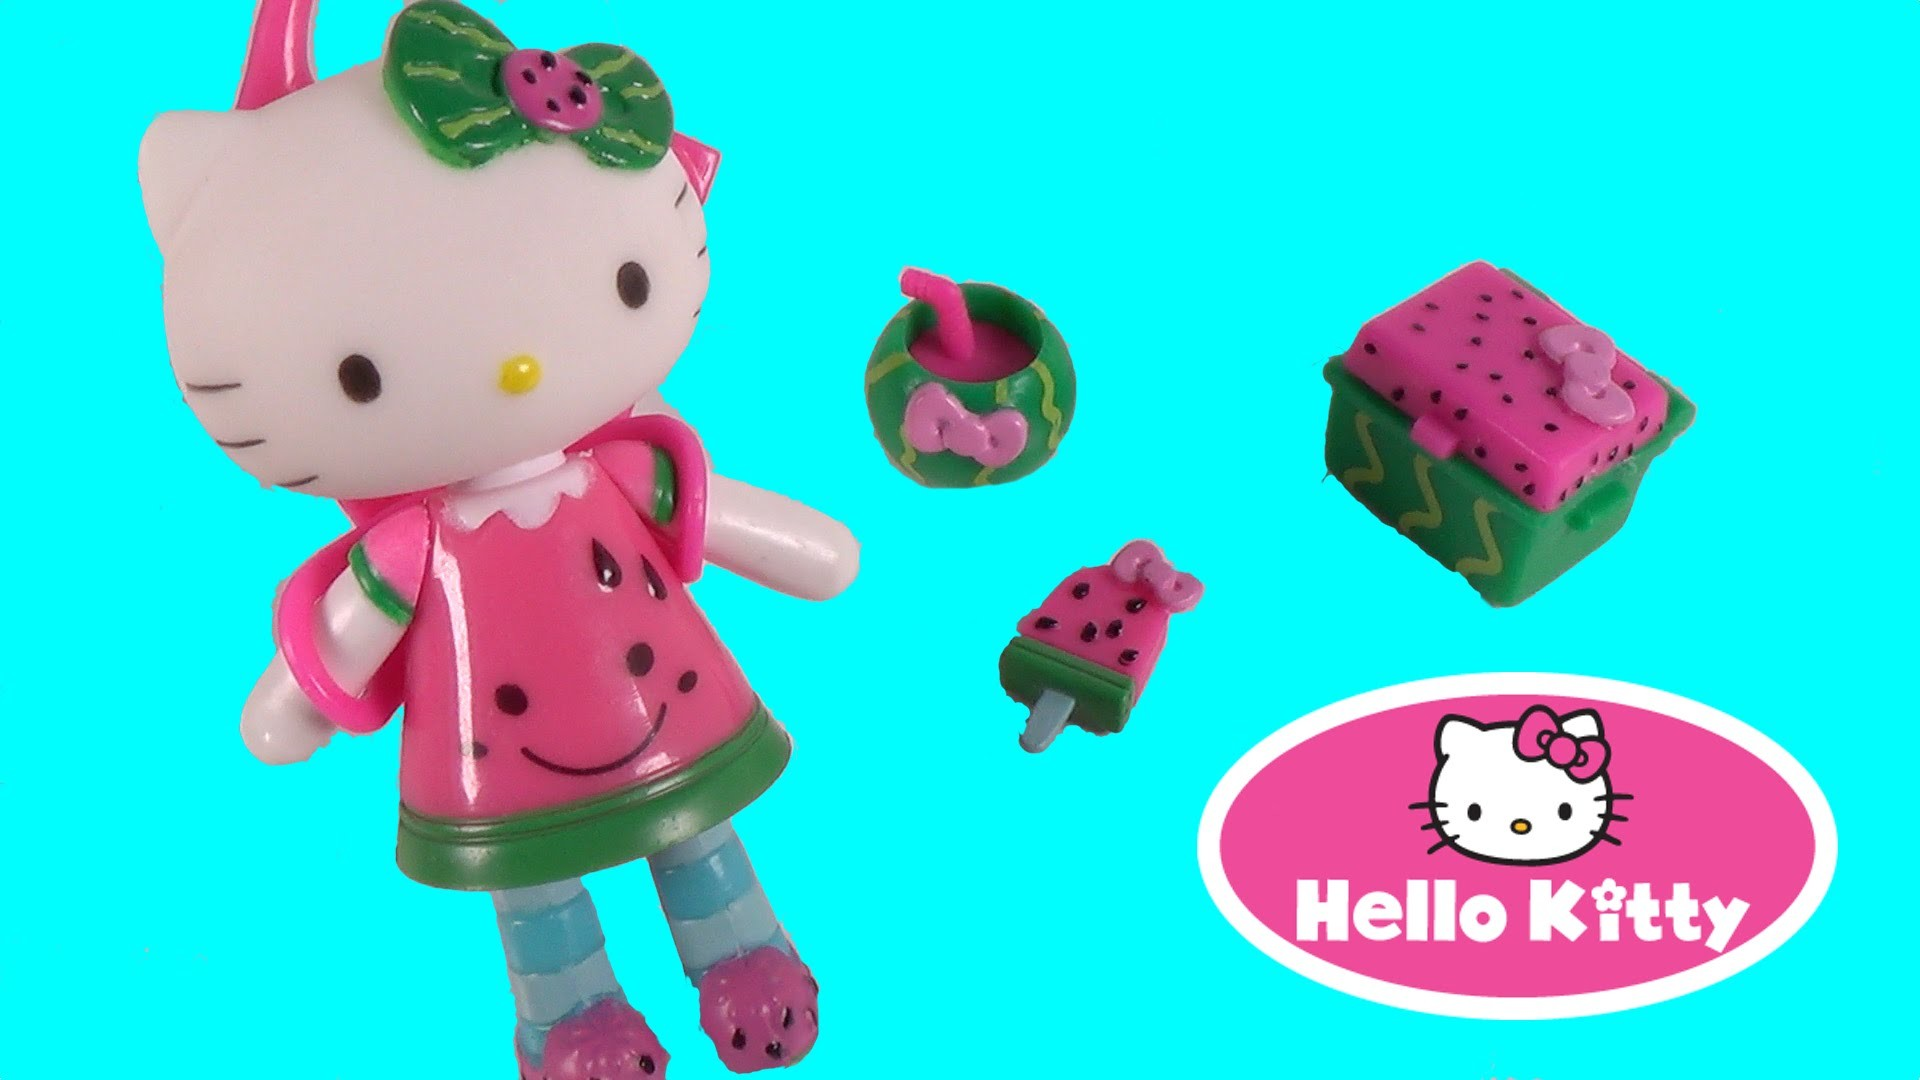 1920x1080 Hello Kitty Watermelon Overload Mini Doll with Surprise Pack - Sanrio Toy  Unboxing